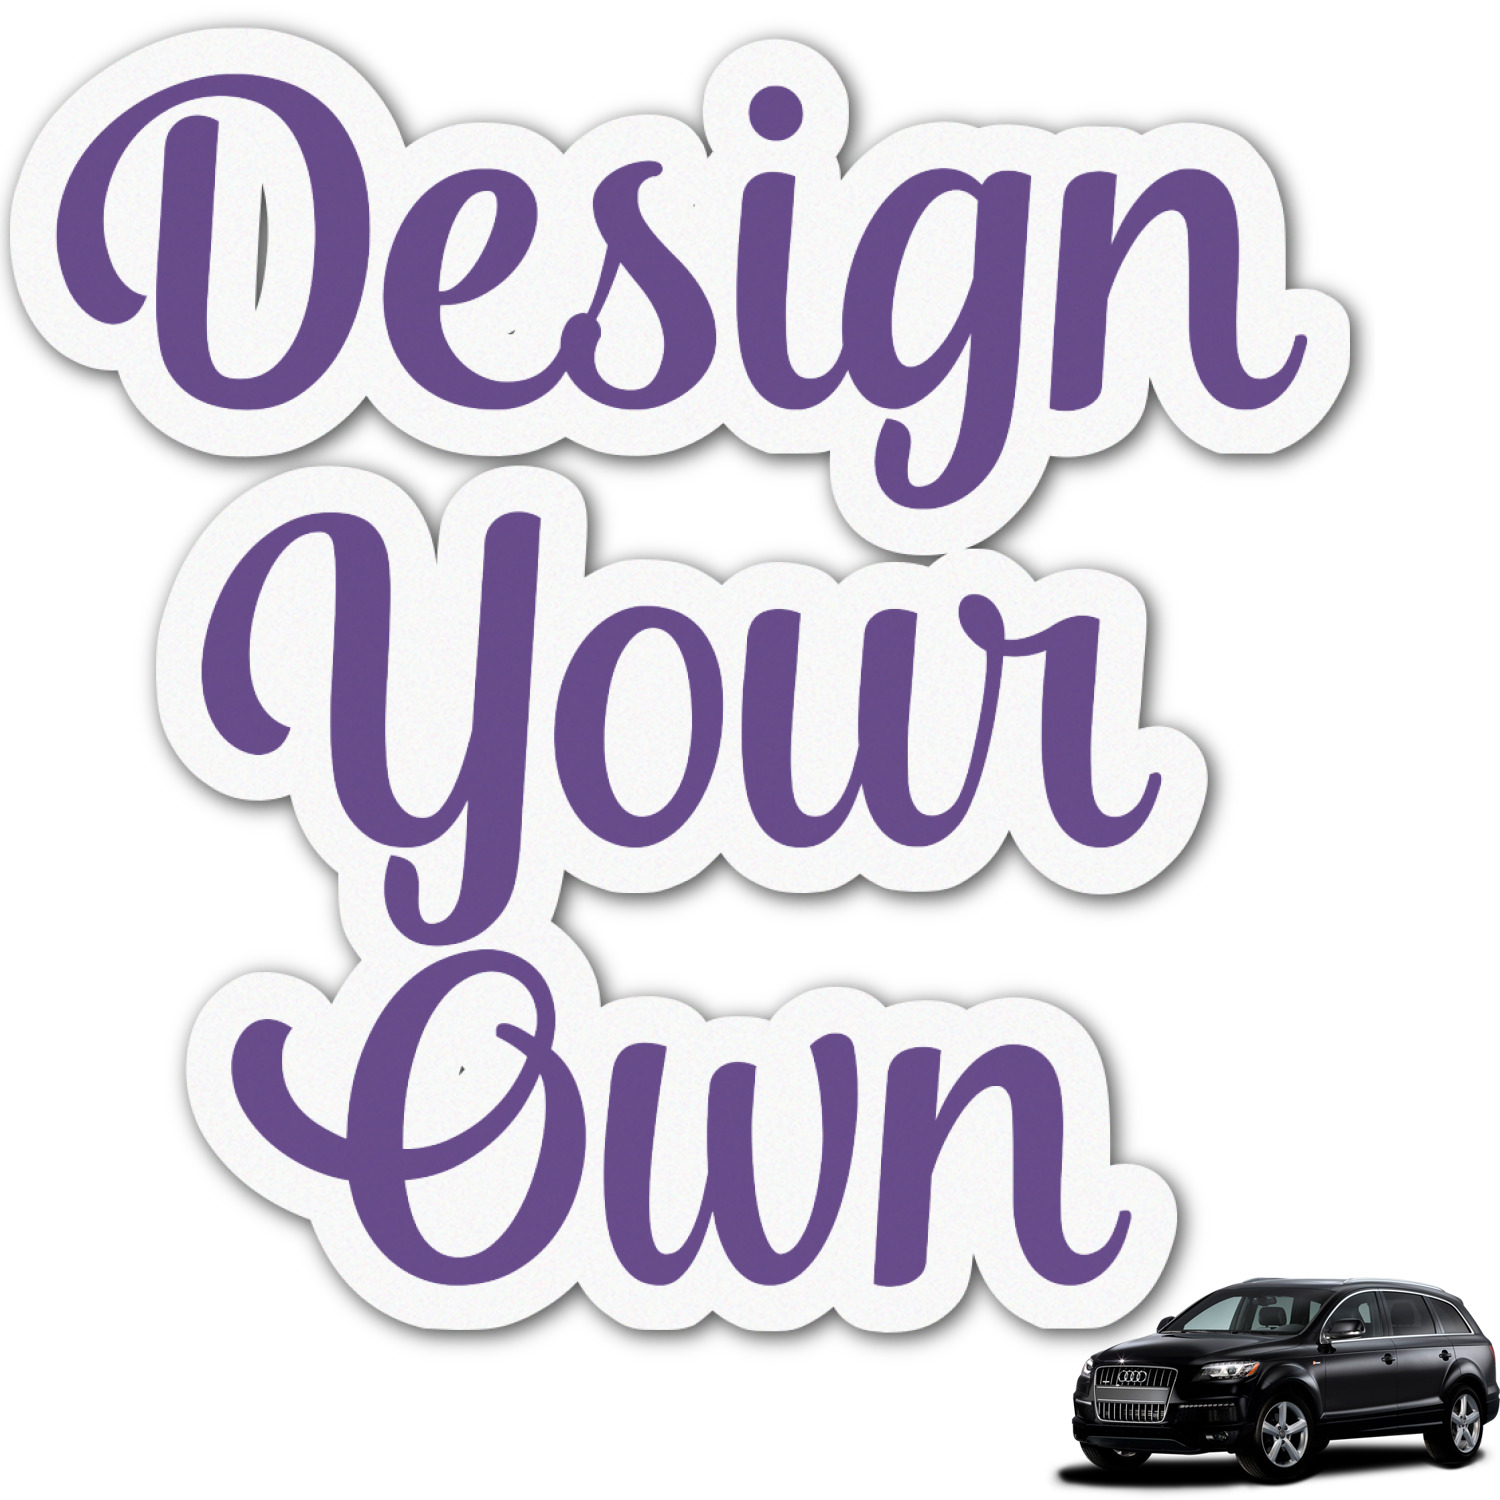 Design Your Own Graphic Car Decal Personalized